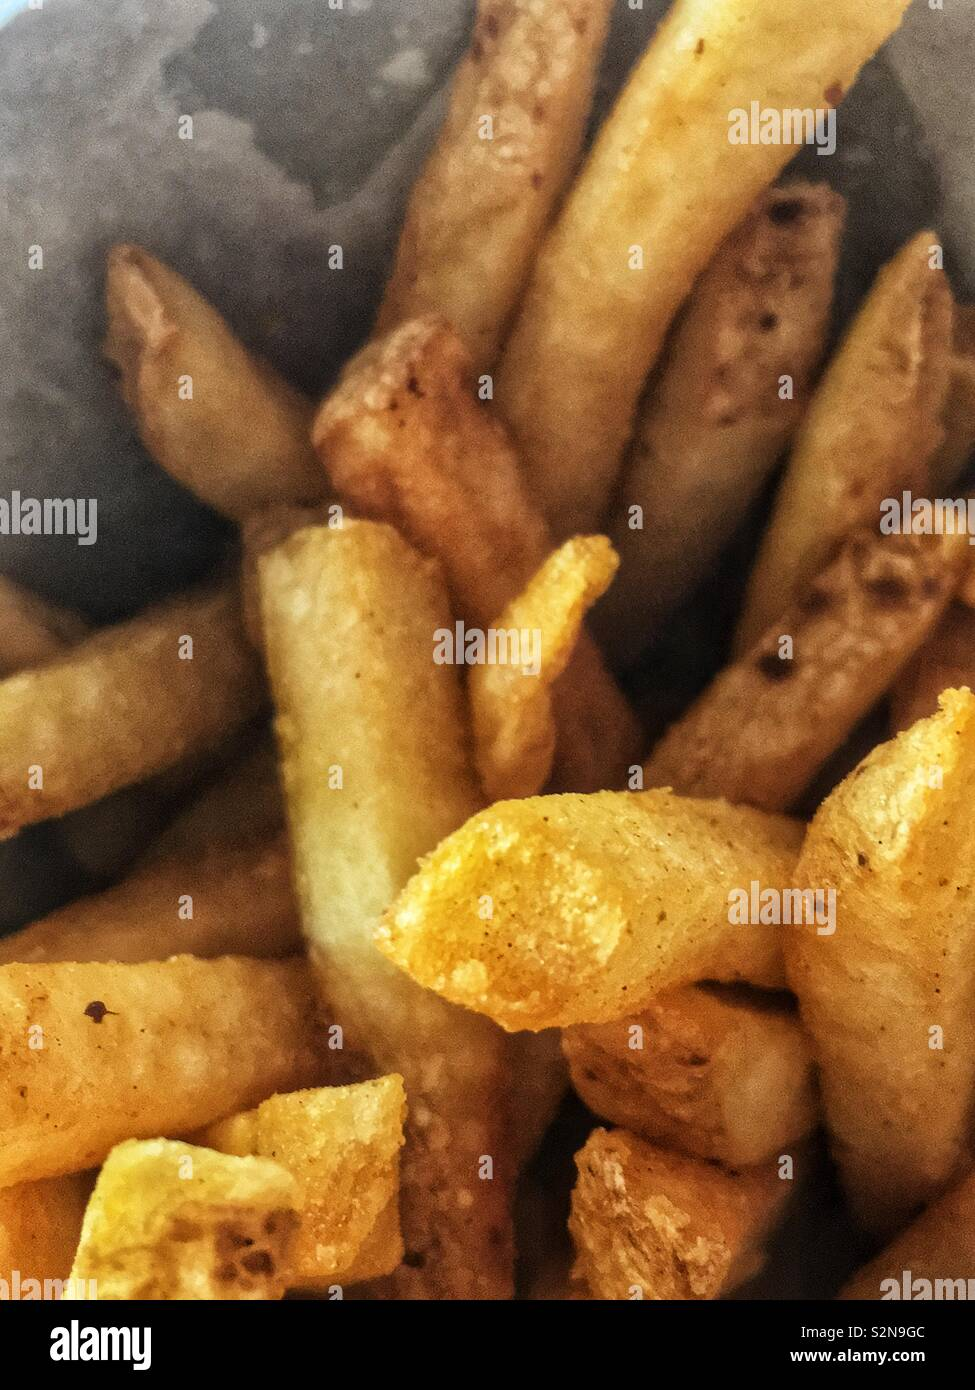 Closeup of fresh delicious tasty French fries served in wax paper. - Stock Image